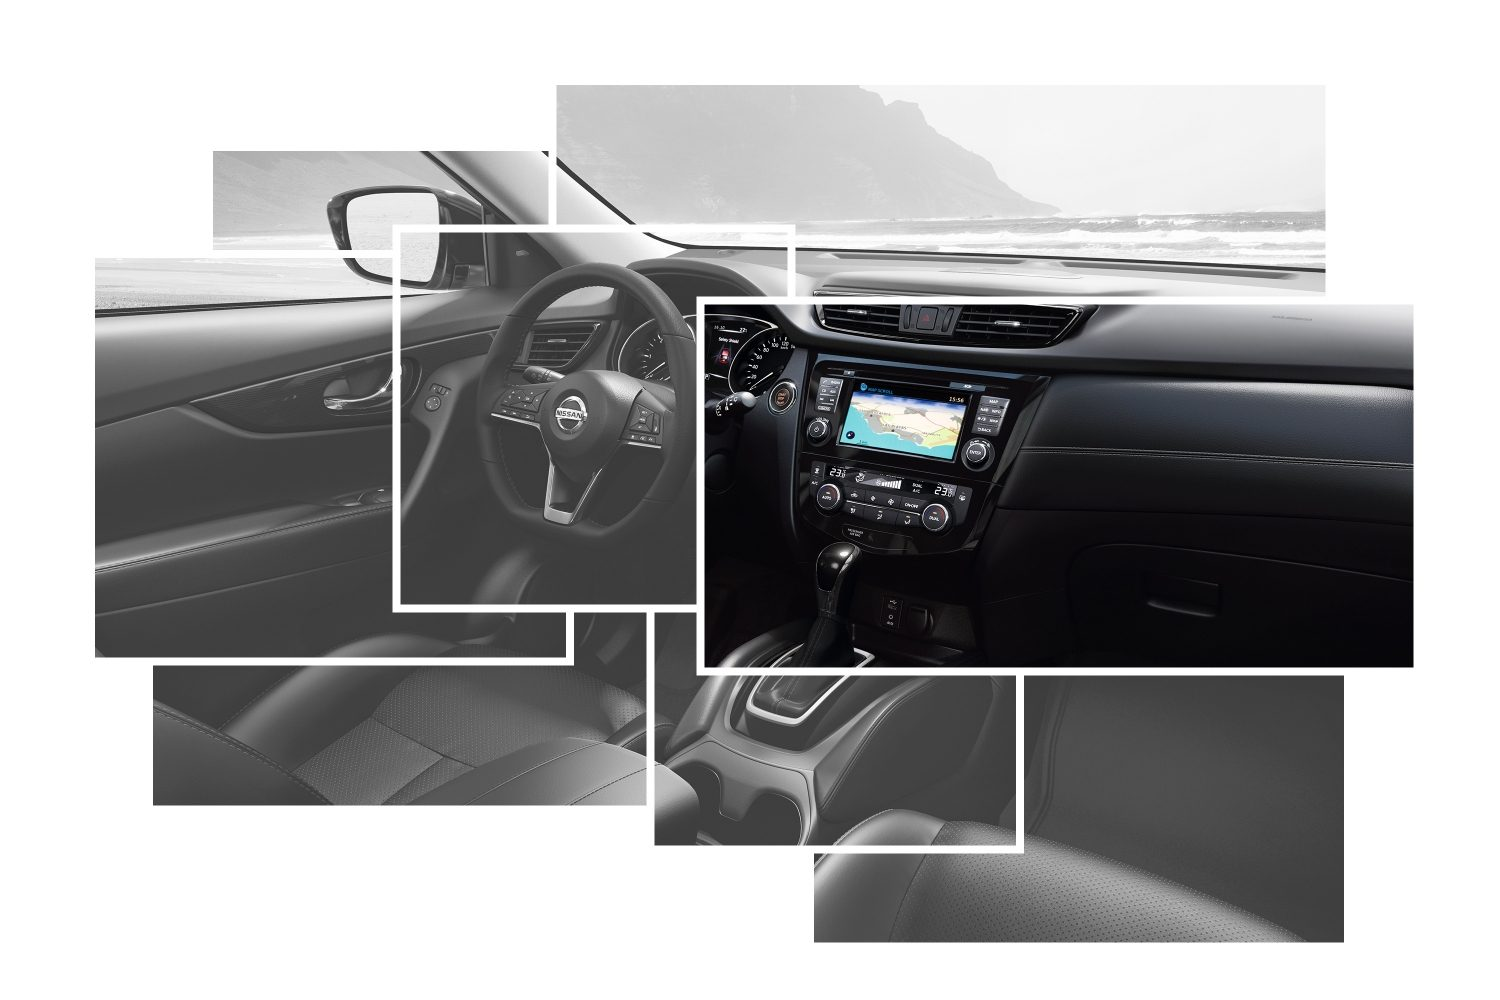 Nissan X-Trail Interior Design details carousel focus on centre console